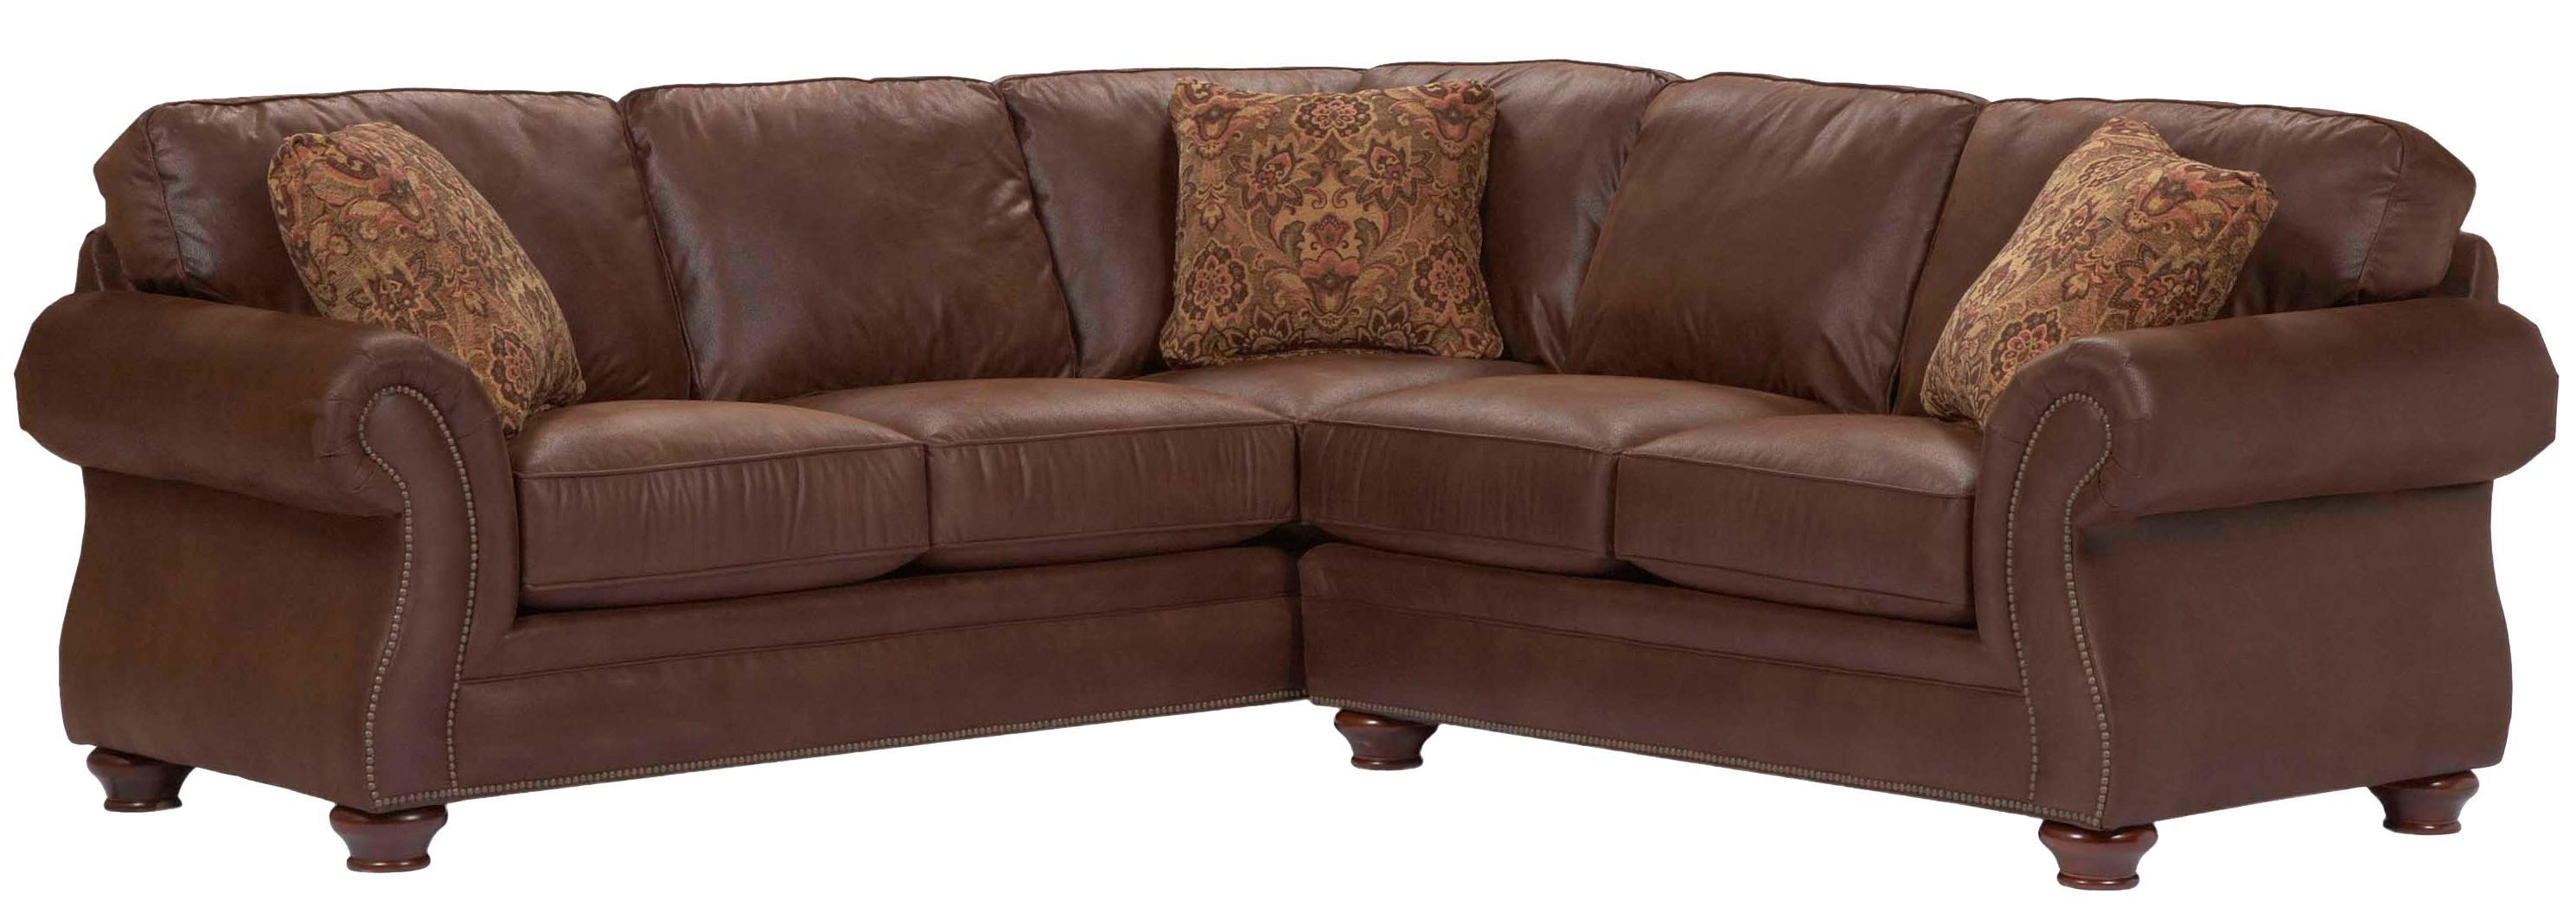 broyhill leather sofa sets slipcover for sleeper perspectives from the